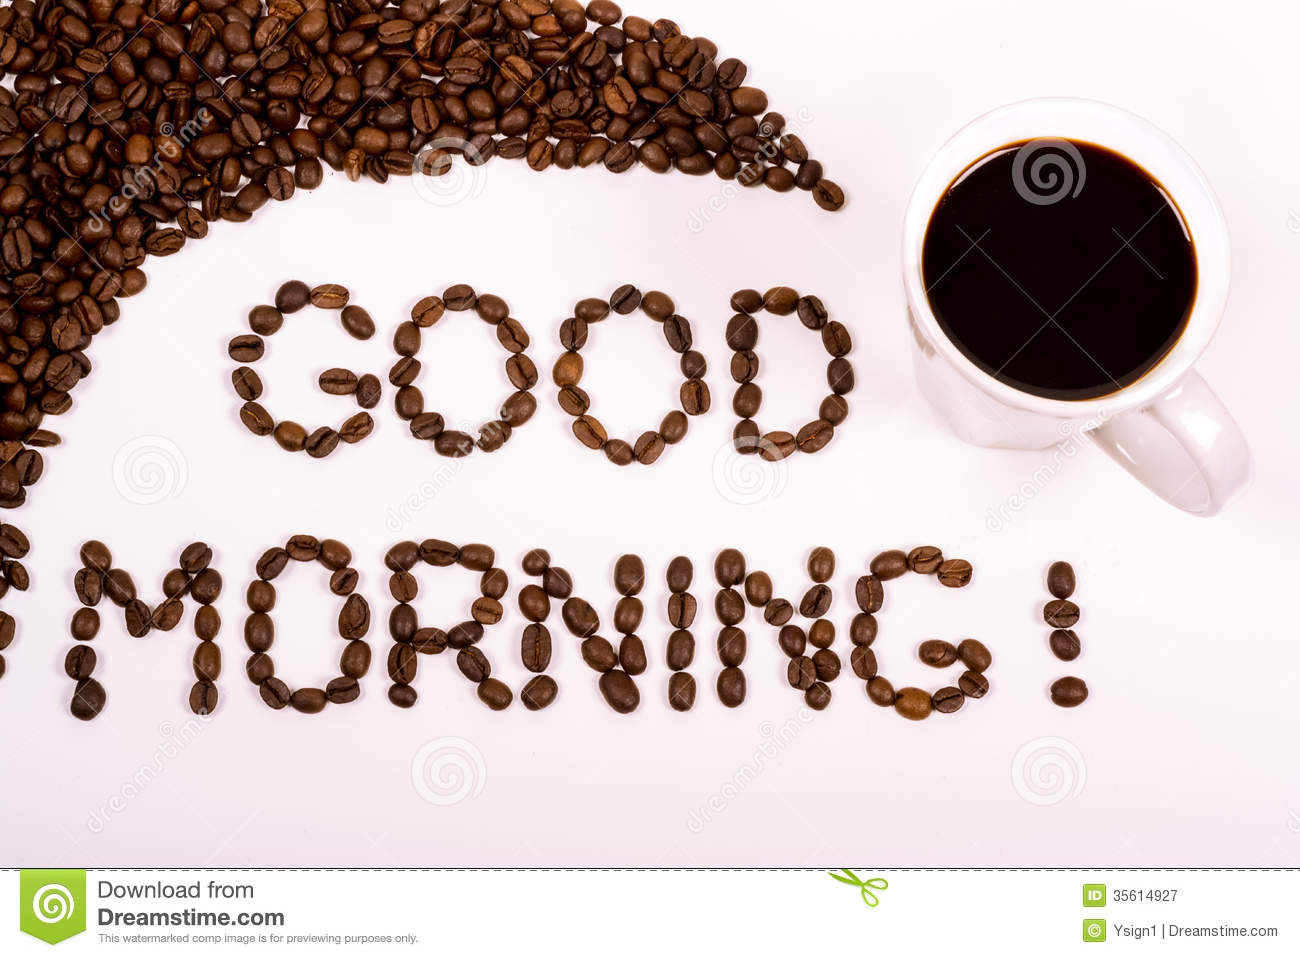 Good Morning Written In The Coffee Beans With A Filled